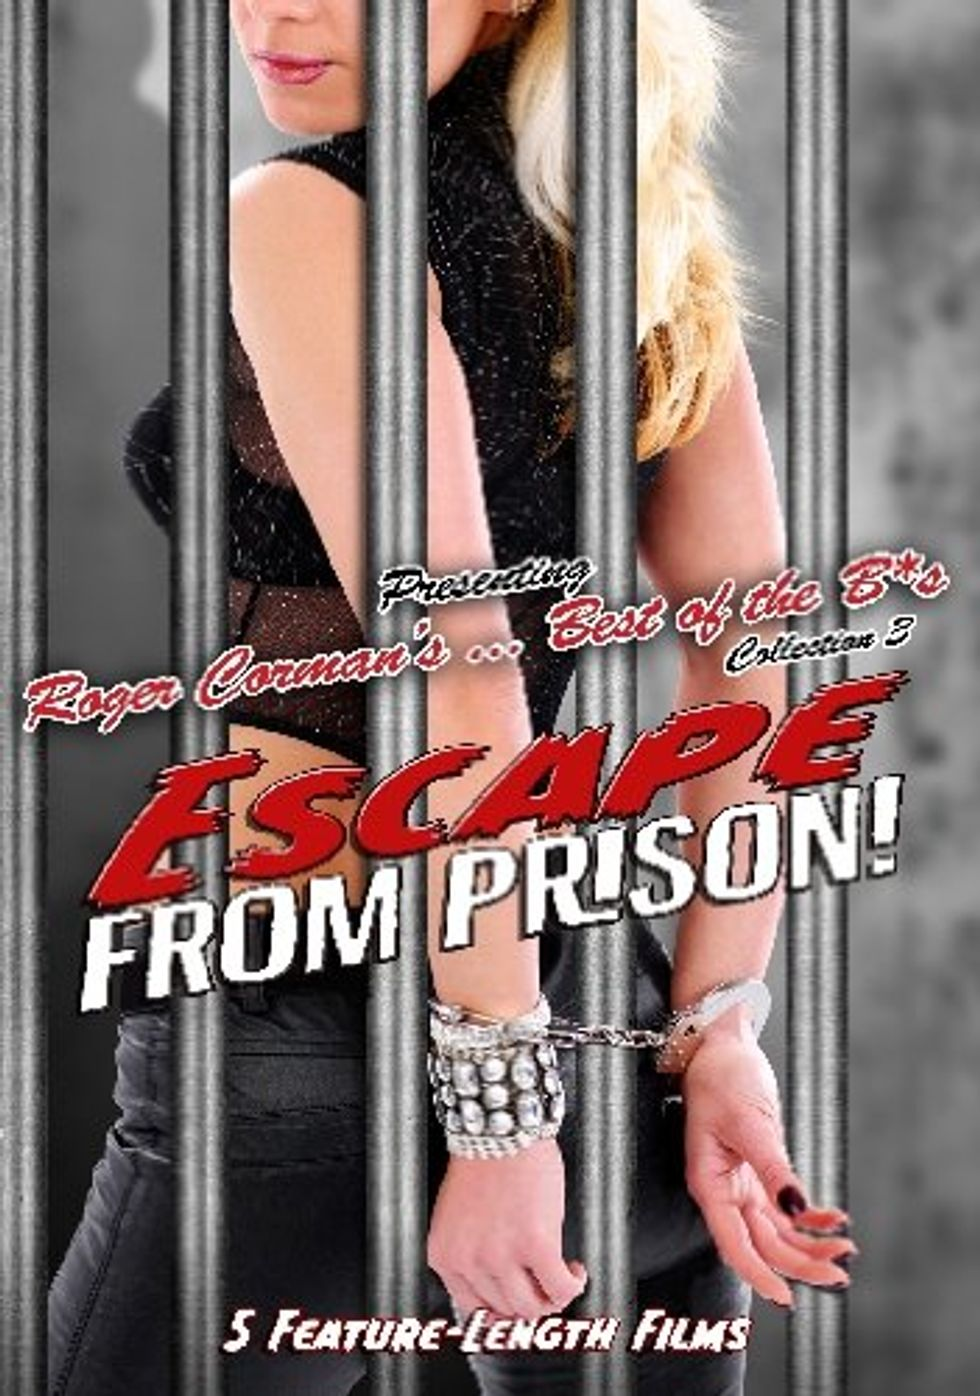 Roger Corman's Best Of The Bs: Escape From Prison! On DVD